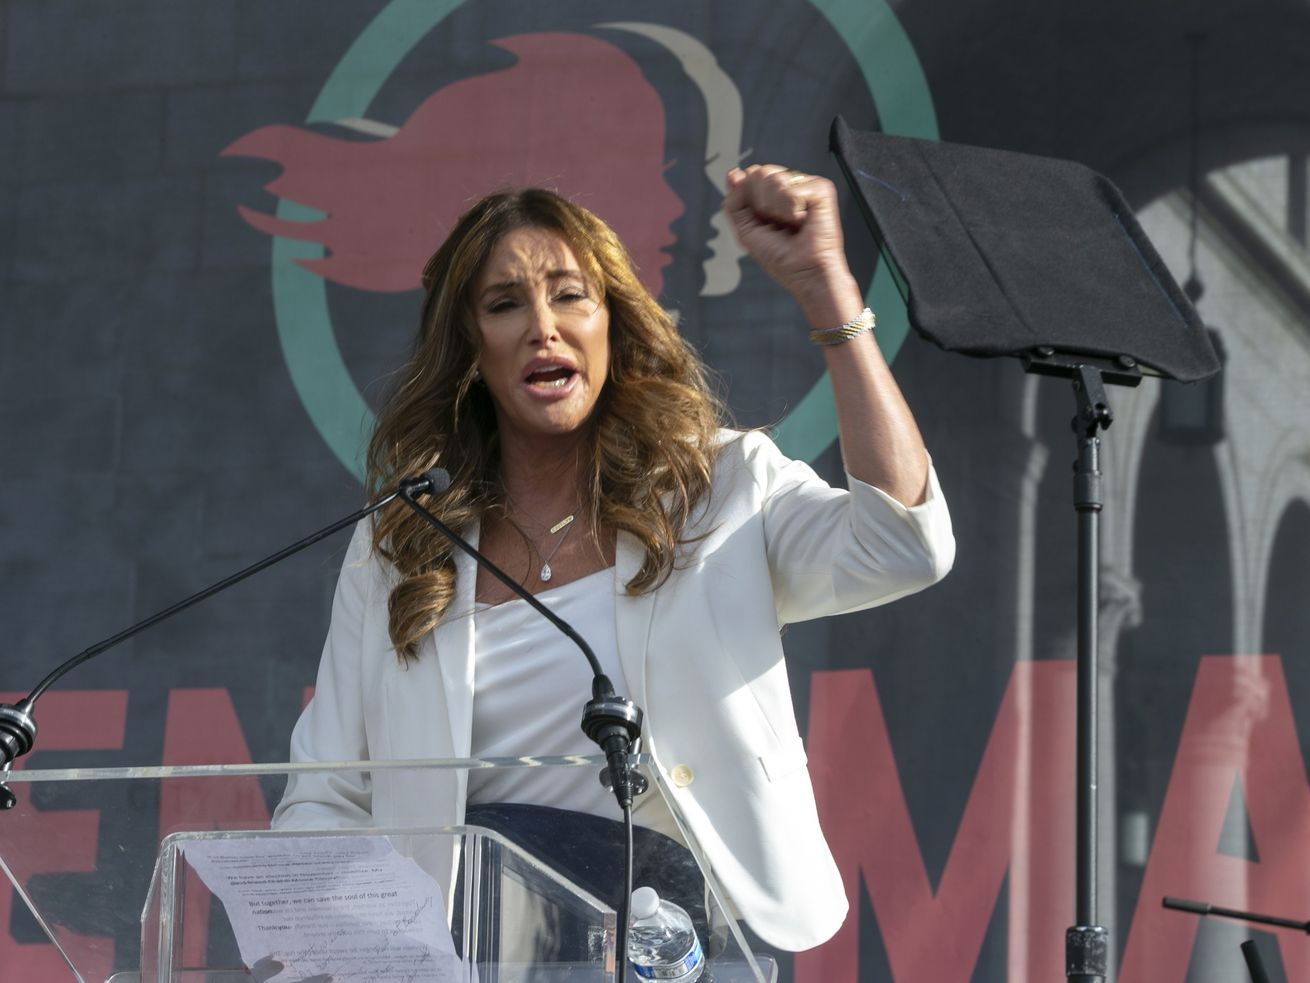 Caitlyn Jenner speaks at the 4th Women's March in Los Angeles in March 2020.